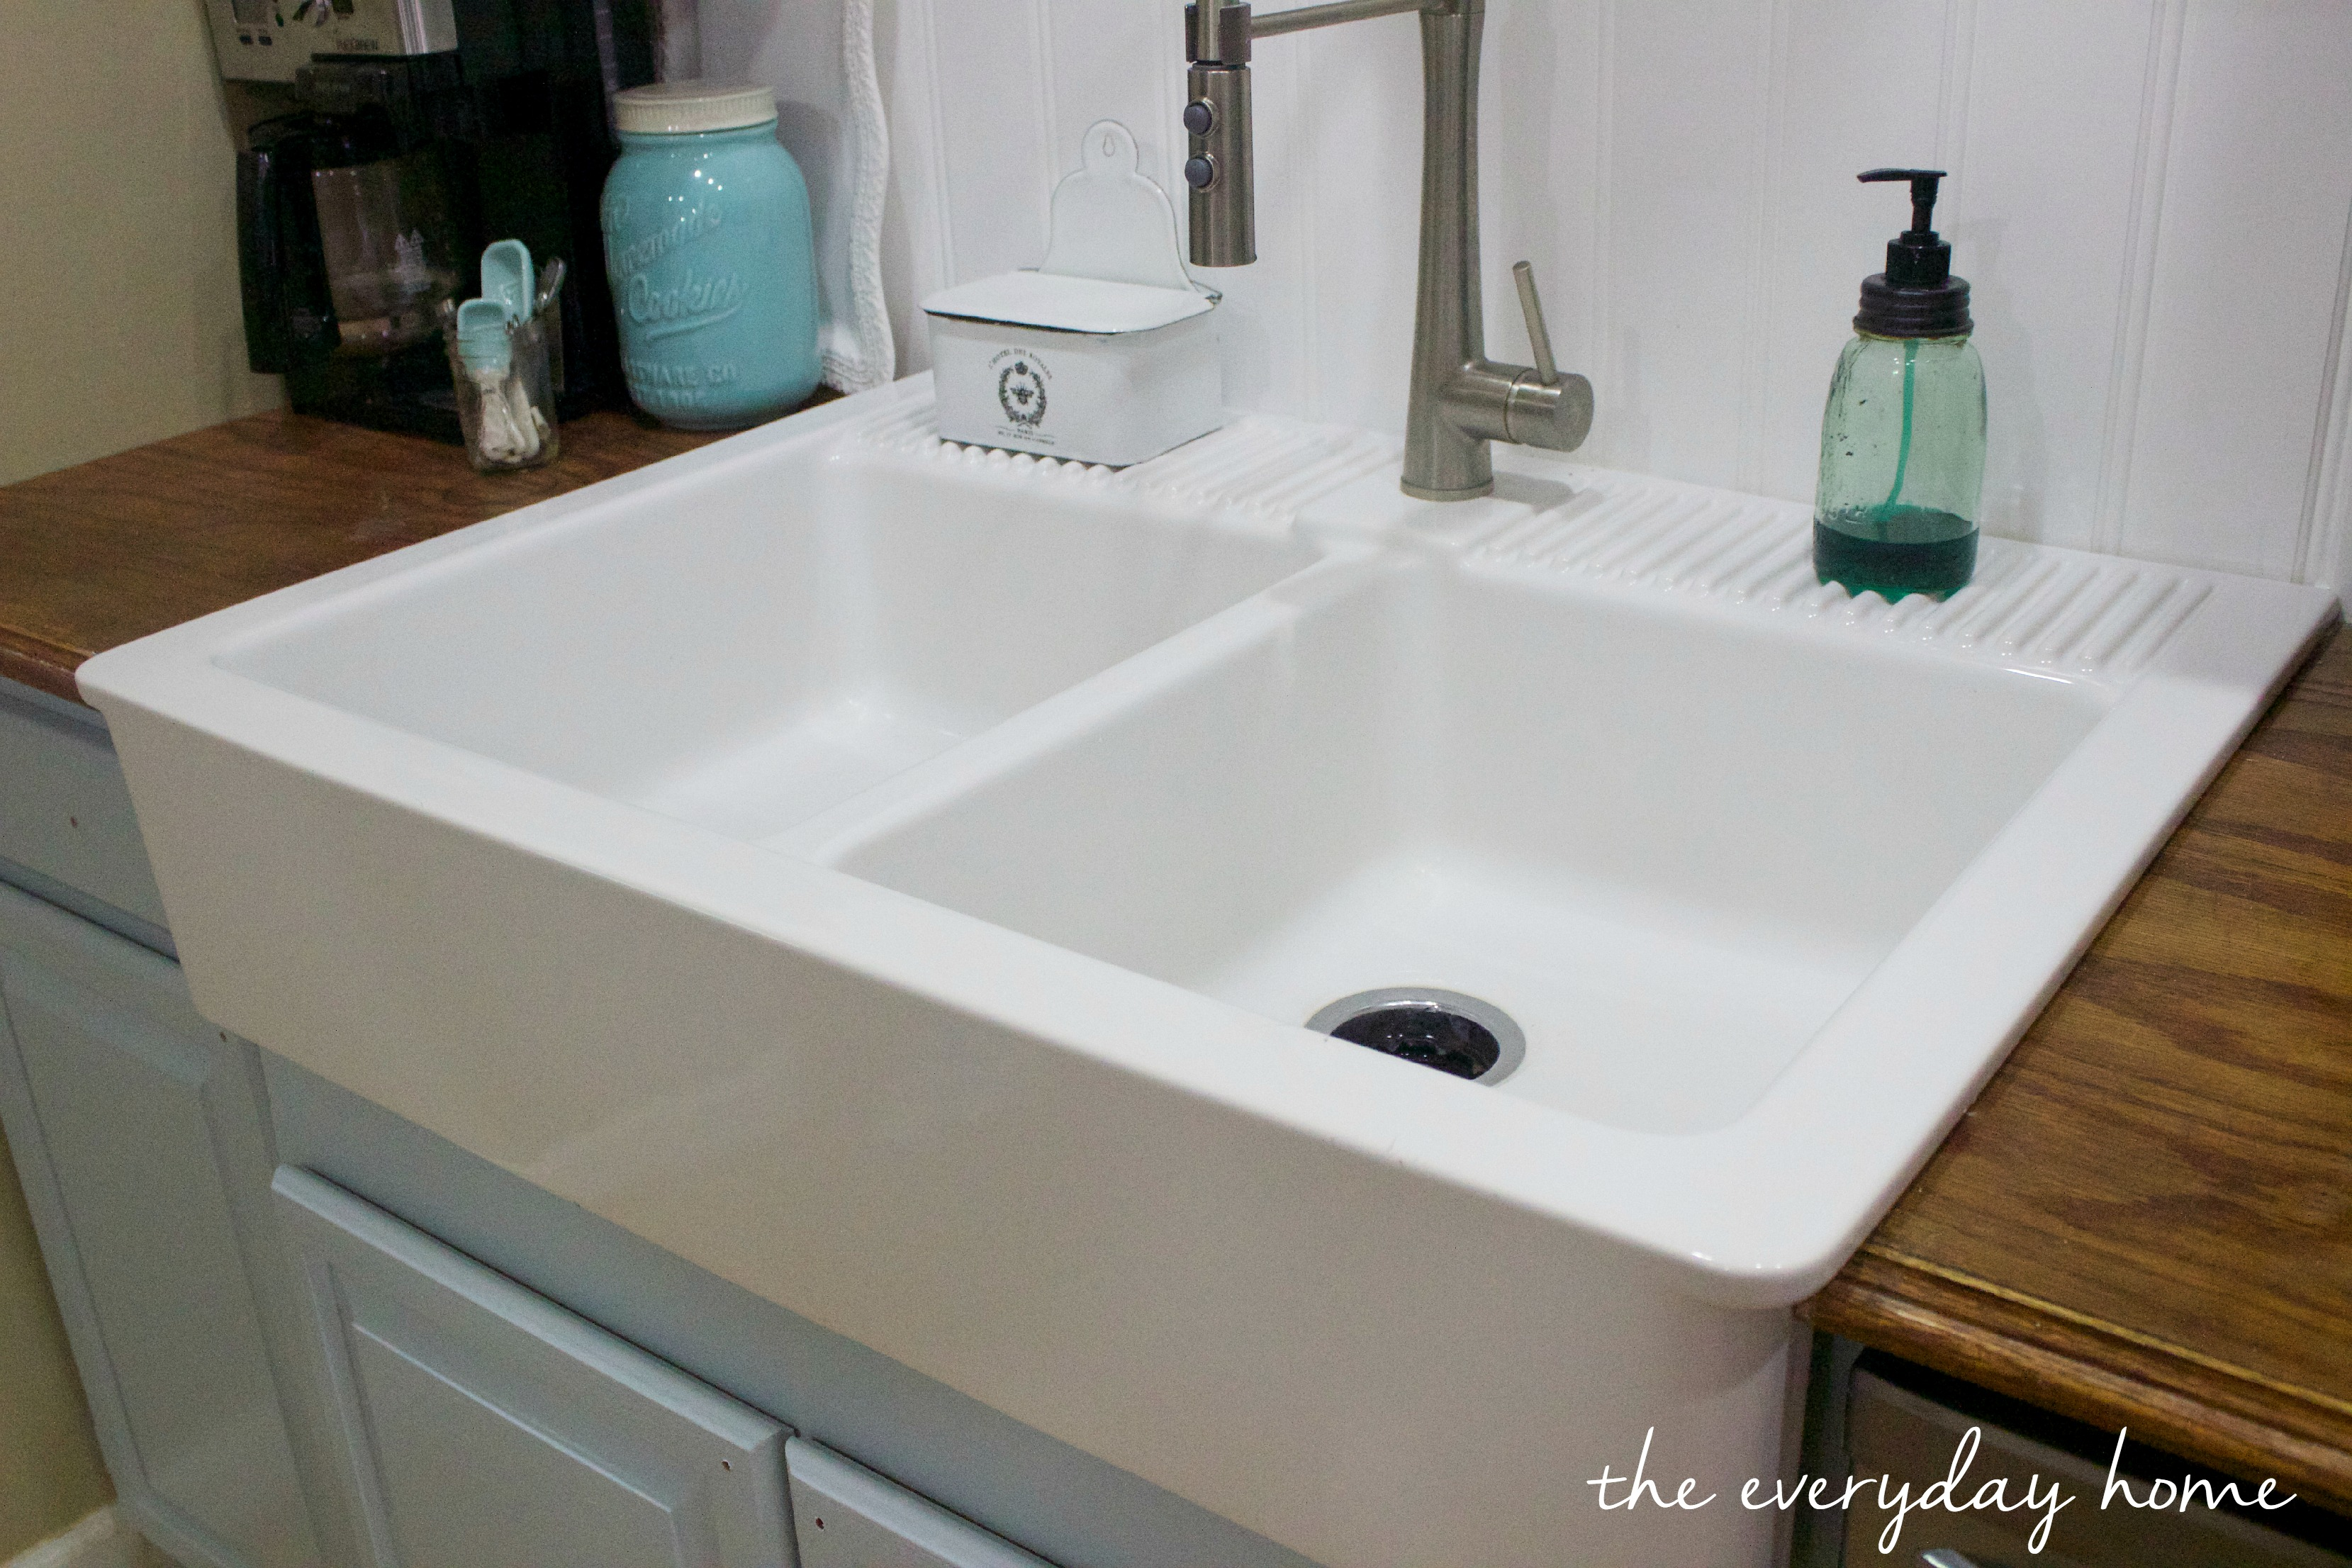 Ikea Farmhouse Sink The Everyday Home Www Evevrydayhomeblog